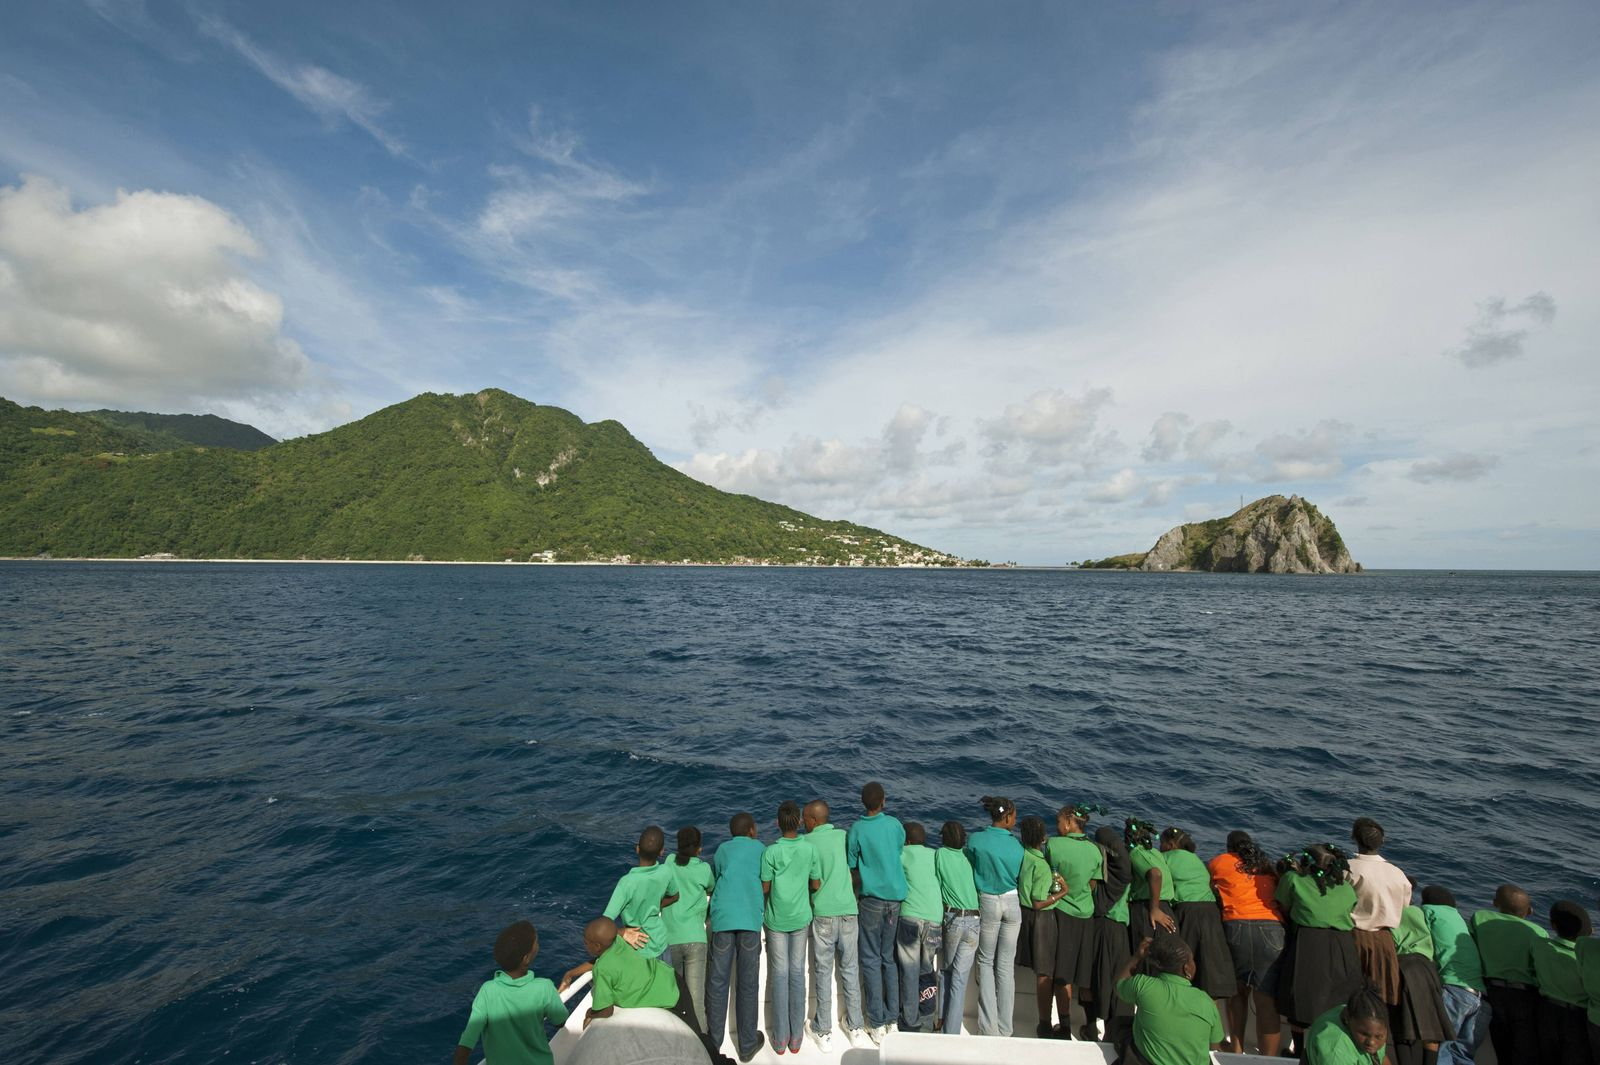 Dominica Roseau schoolchildren looking for dolphins and whales on the boat during the Unicef Dom